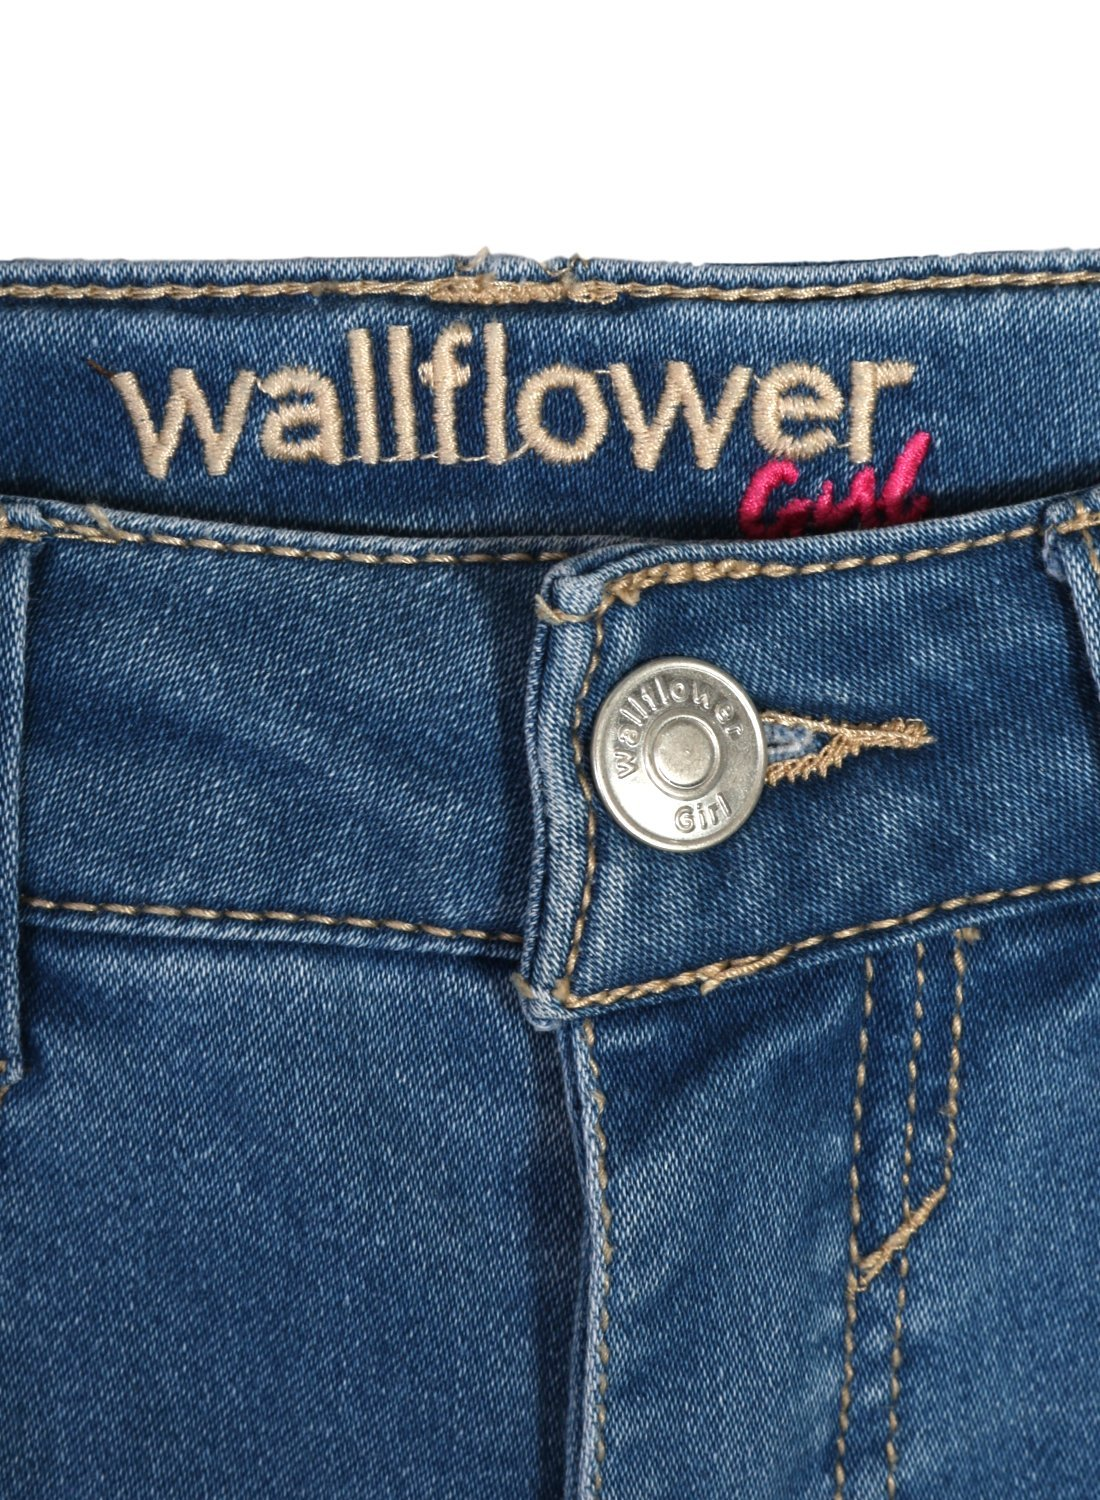 WallFlower Girl's Skinny Soft Stretch Jeans with Rips and Tears, Light Wash/Floral 8 by WallFlower Jeans (Image #2)